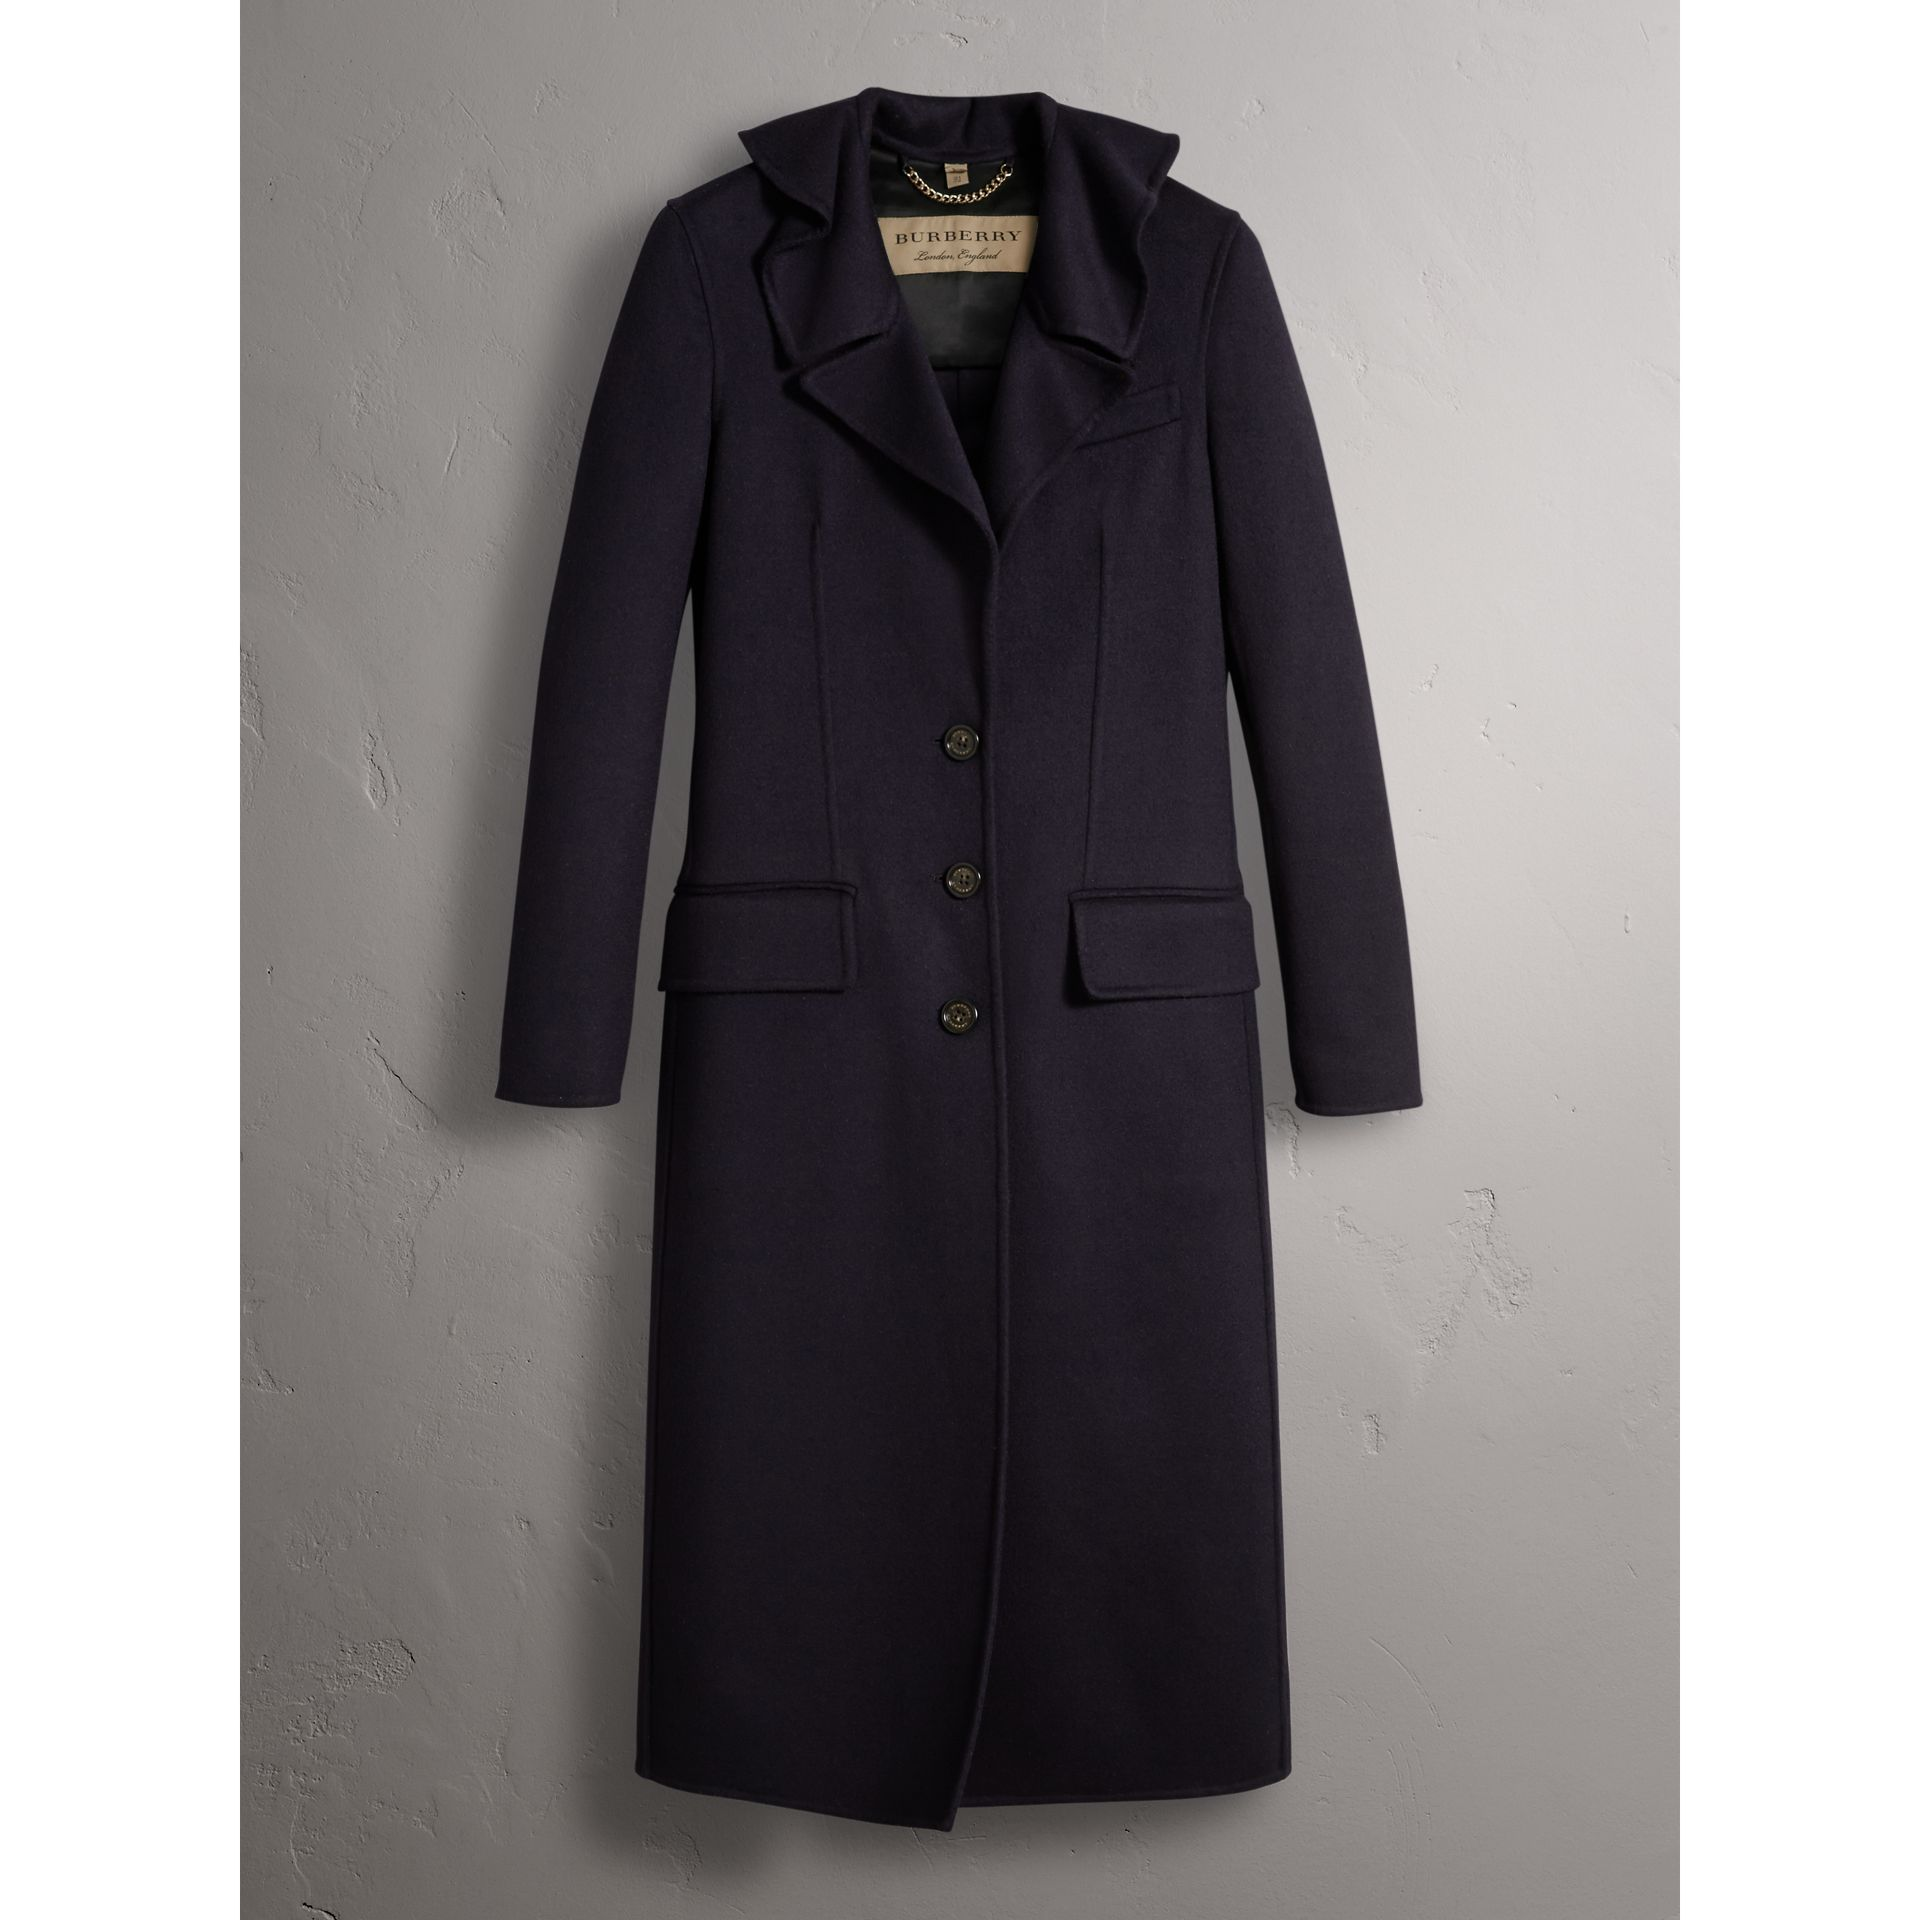 Ruffled Collar Wool Cashmere Coat in Navy - Women | Burberry United Kingdom - gallery image 4